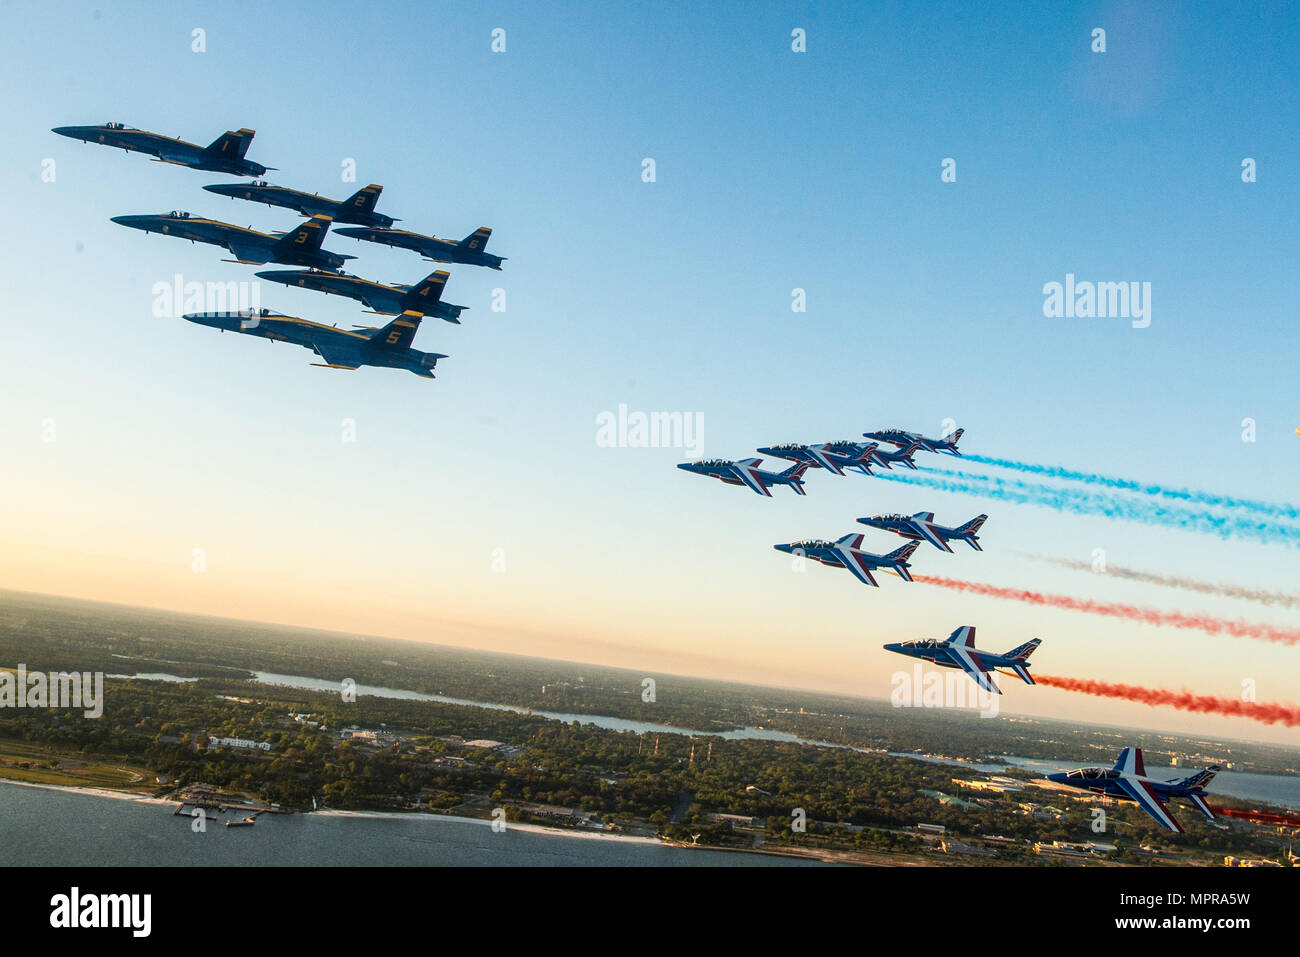 170409-N-ZG607-848 PENSACOLA, Fla. (Apr. 9, 2017) U.S. Navy Flight Demonstration Squadron, The Blue Angels fly in formation with the Patrouille Acrobatique de France enroute to Naval Air Station Pensacola. The Blue Angels are scheduled to perform more than 60 demonstrations across the U.S. in 2017. (U.S. Navy photo by Mass Communication Specialist 3rd Class Dominick Cremeans/Released) - Stock Image